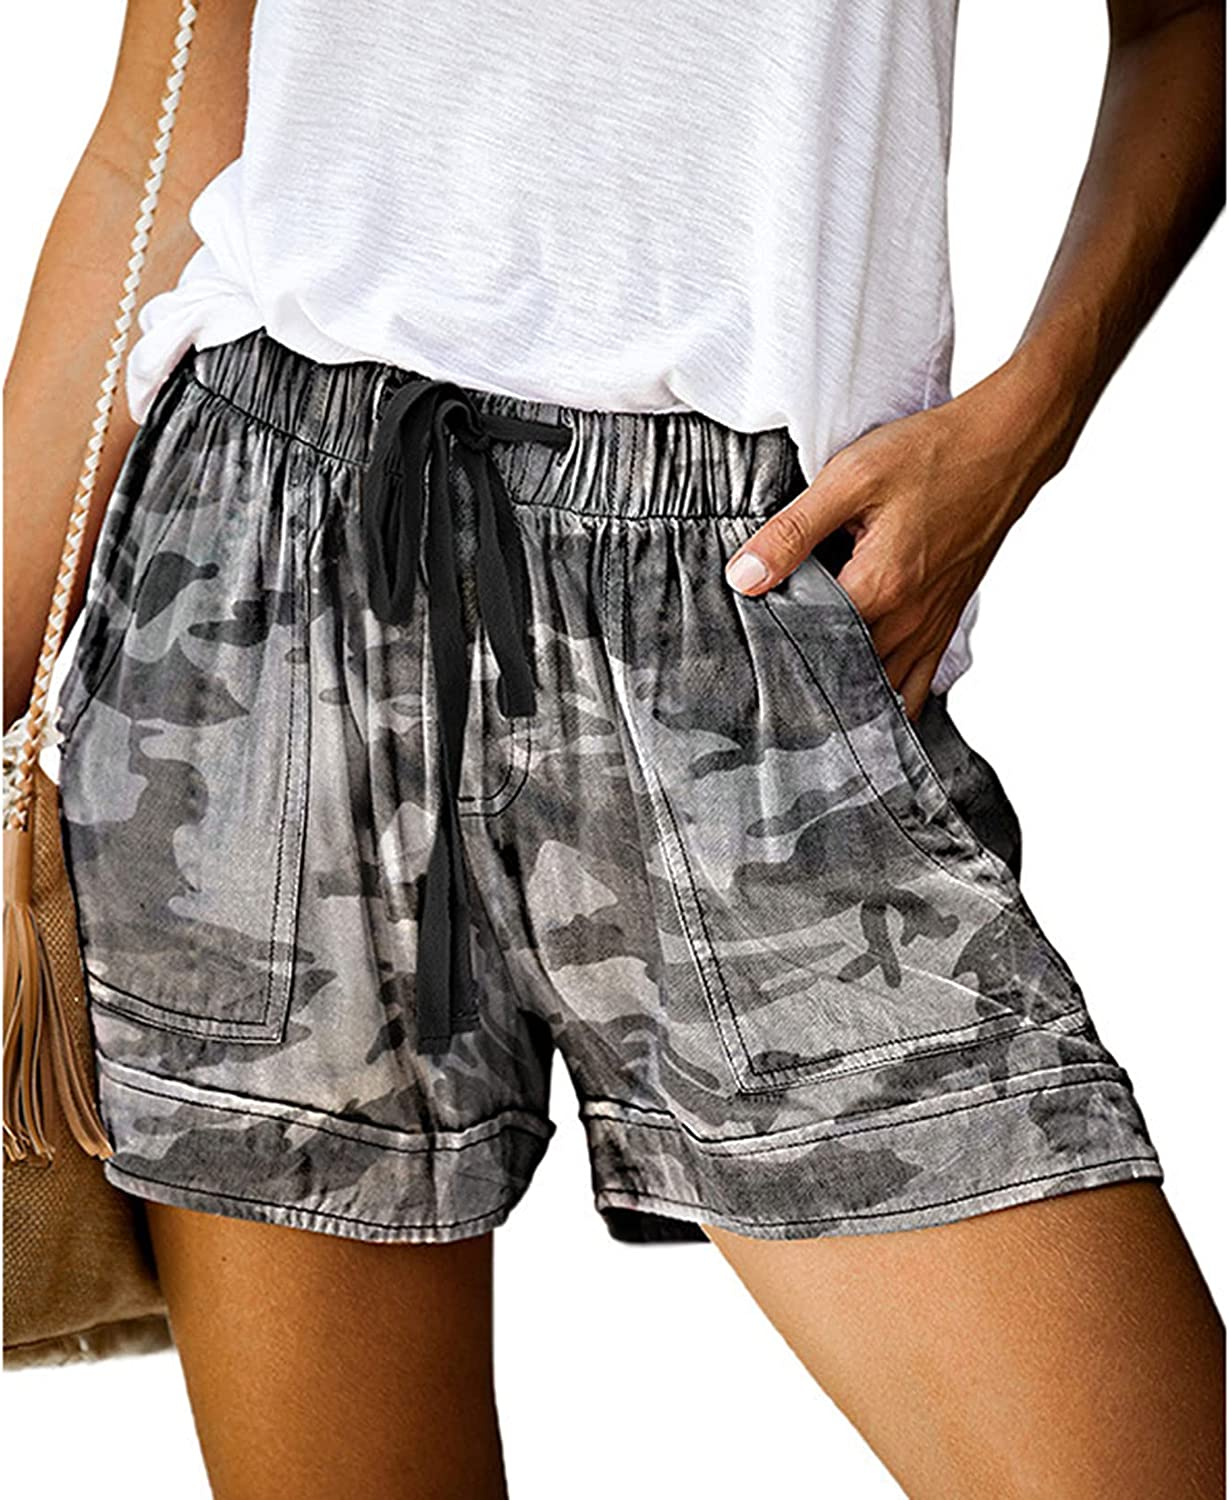 Lu's Chic Women's High Rise Shorts Cute Cotton Comfy Lounge Drawstring Relaxed Fit Cool Shorts